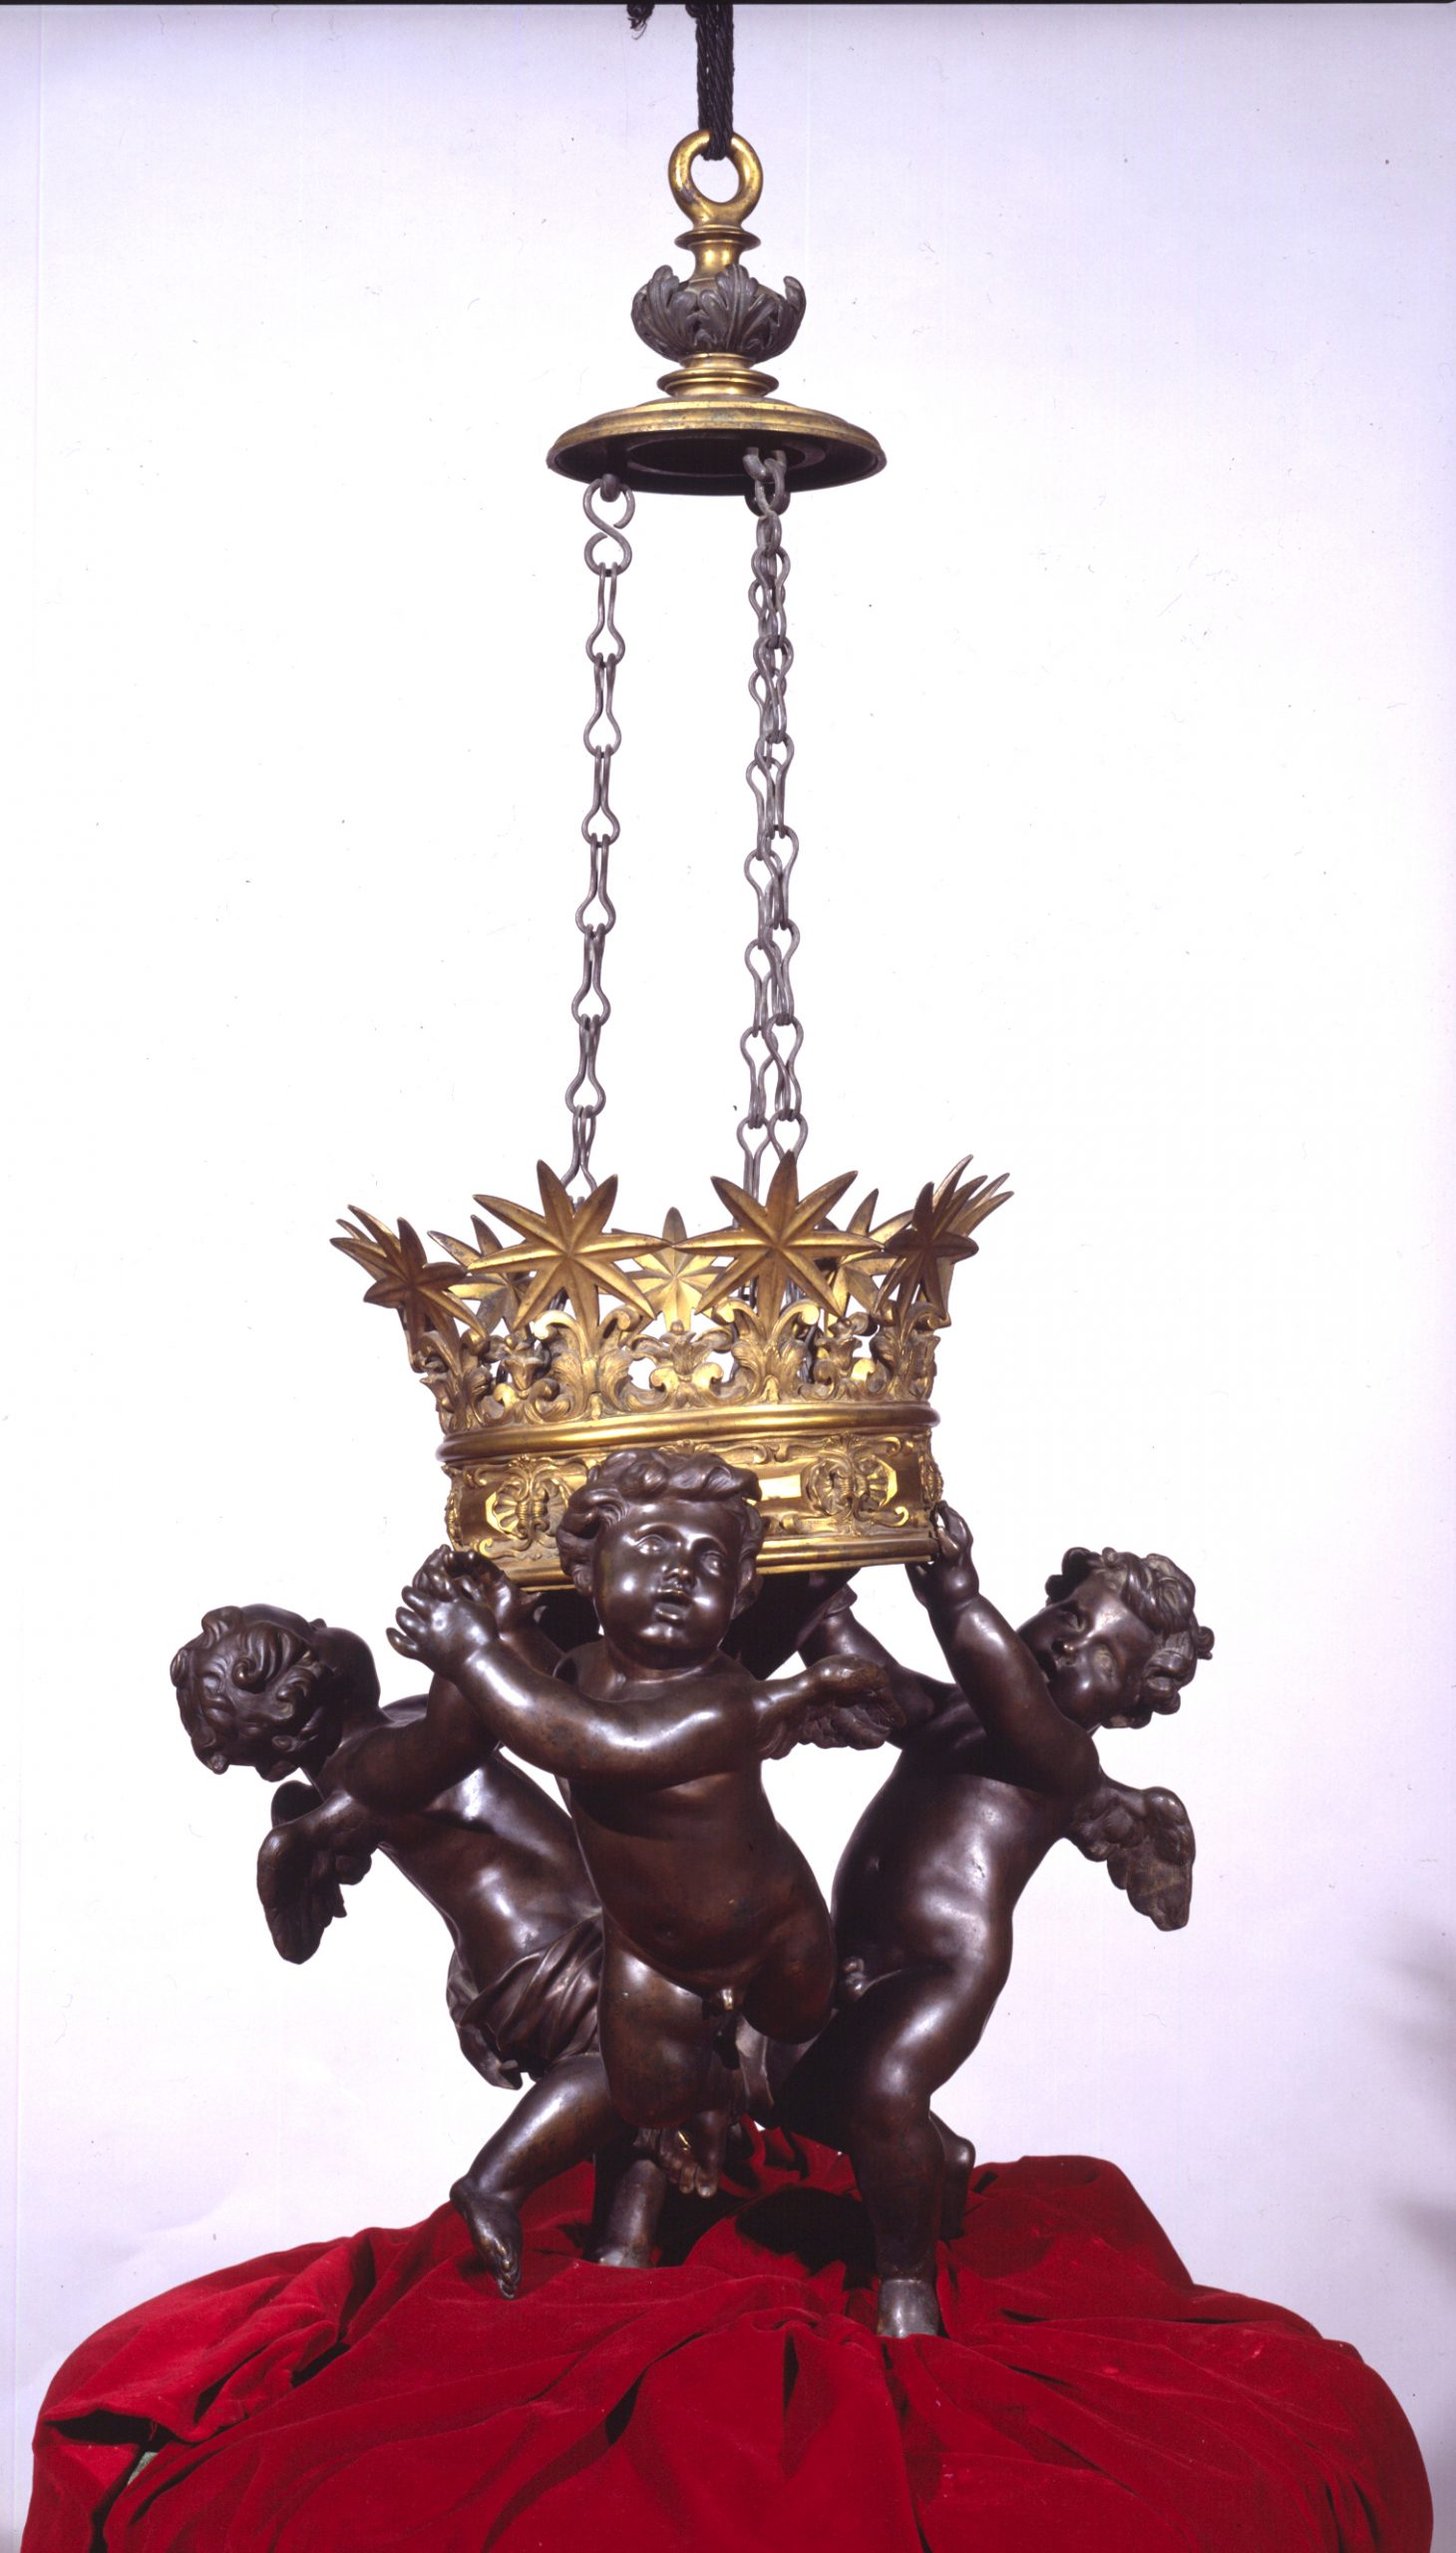 Sculptures of three winged cherubs hang from a light fixture adorned with five-pointed stars